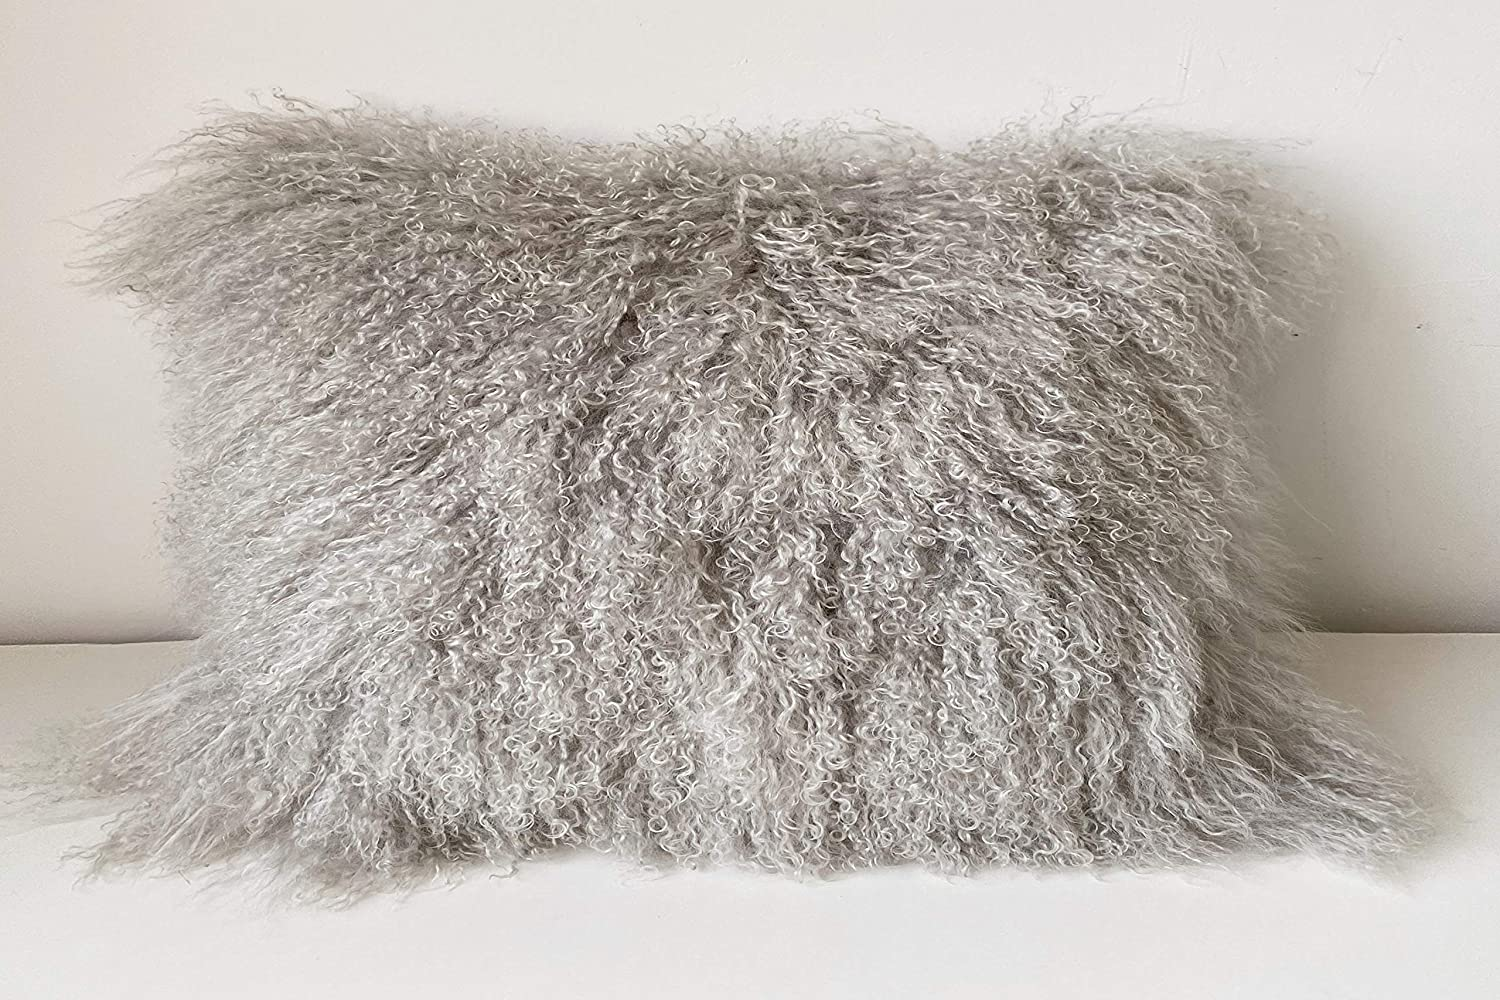 KumiQ 100% Real Mongolian Lamb Fur Curly Wool Pillow Cushion,Home Decorative Sheepskin Throw Pillow with Insert Included,12x20in,Light Gray